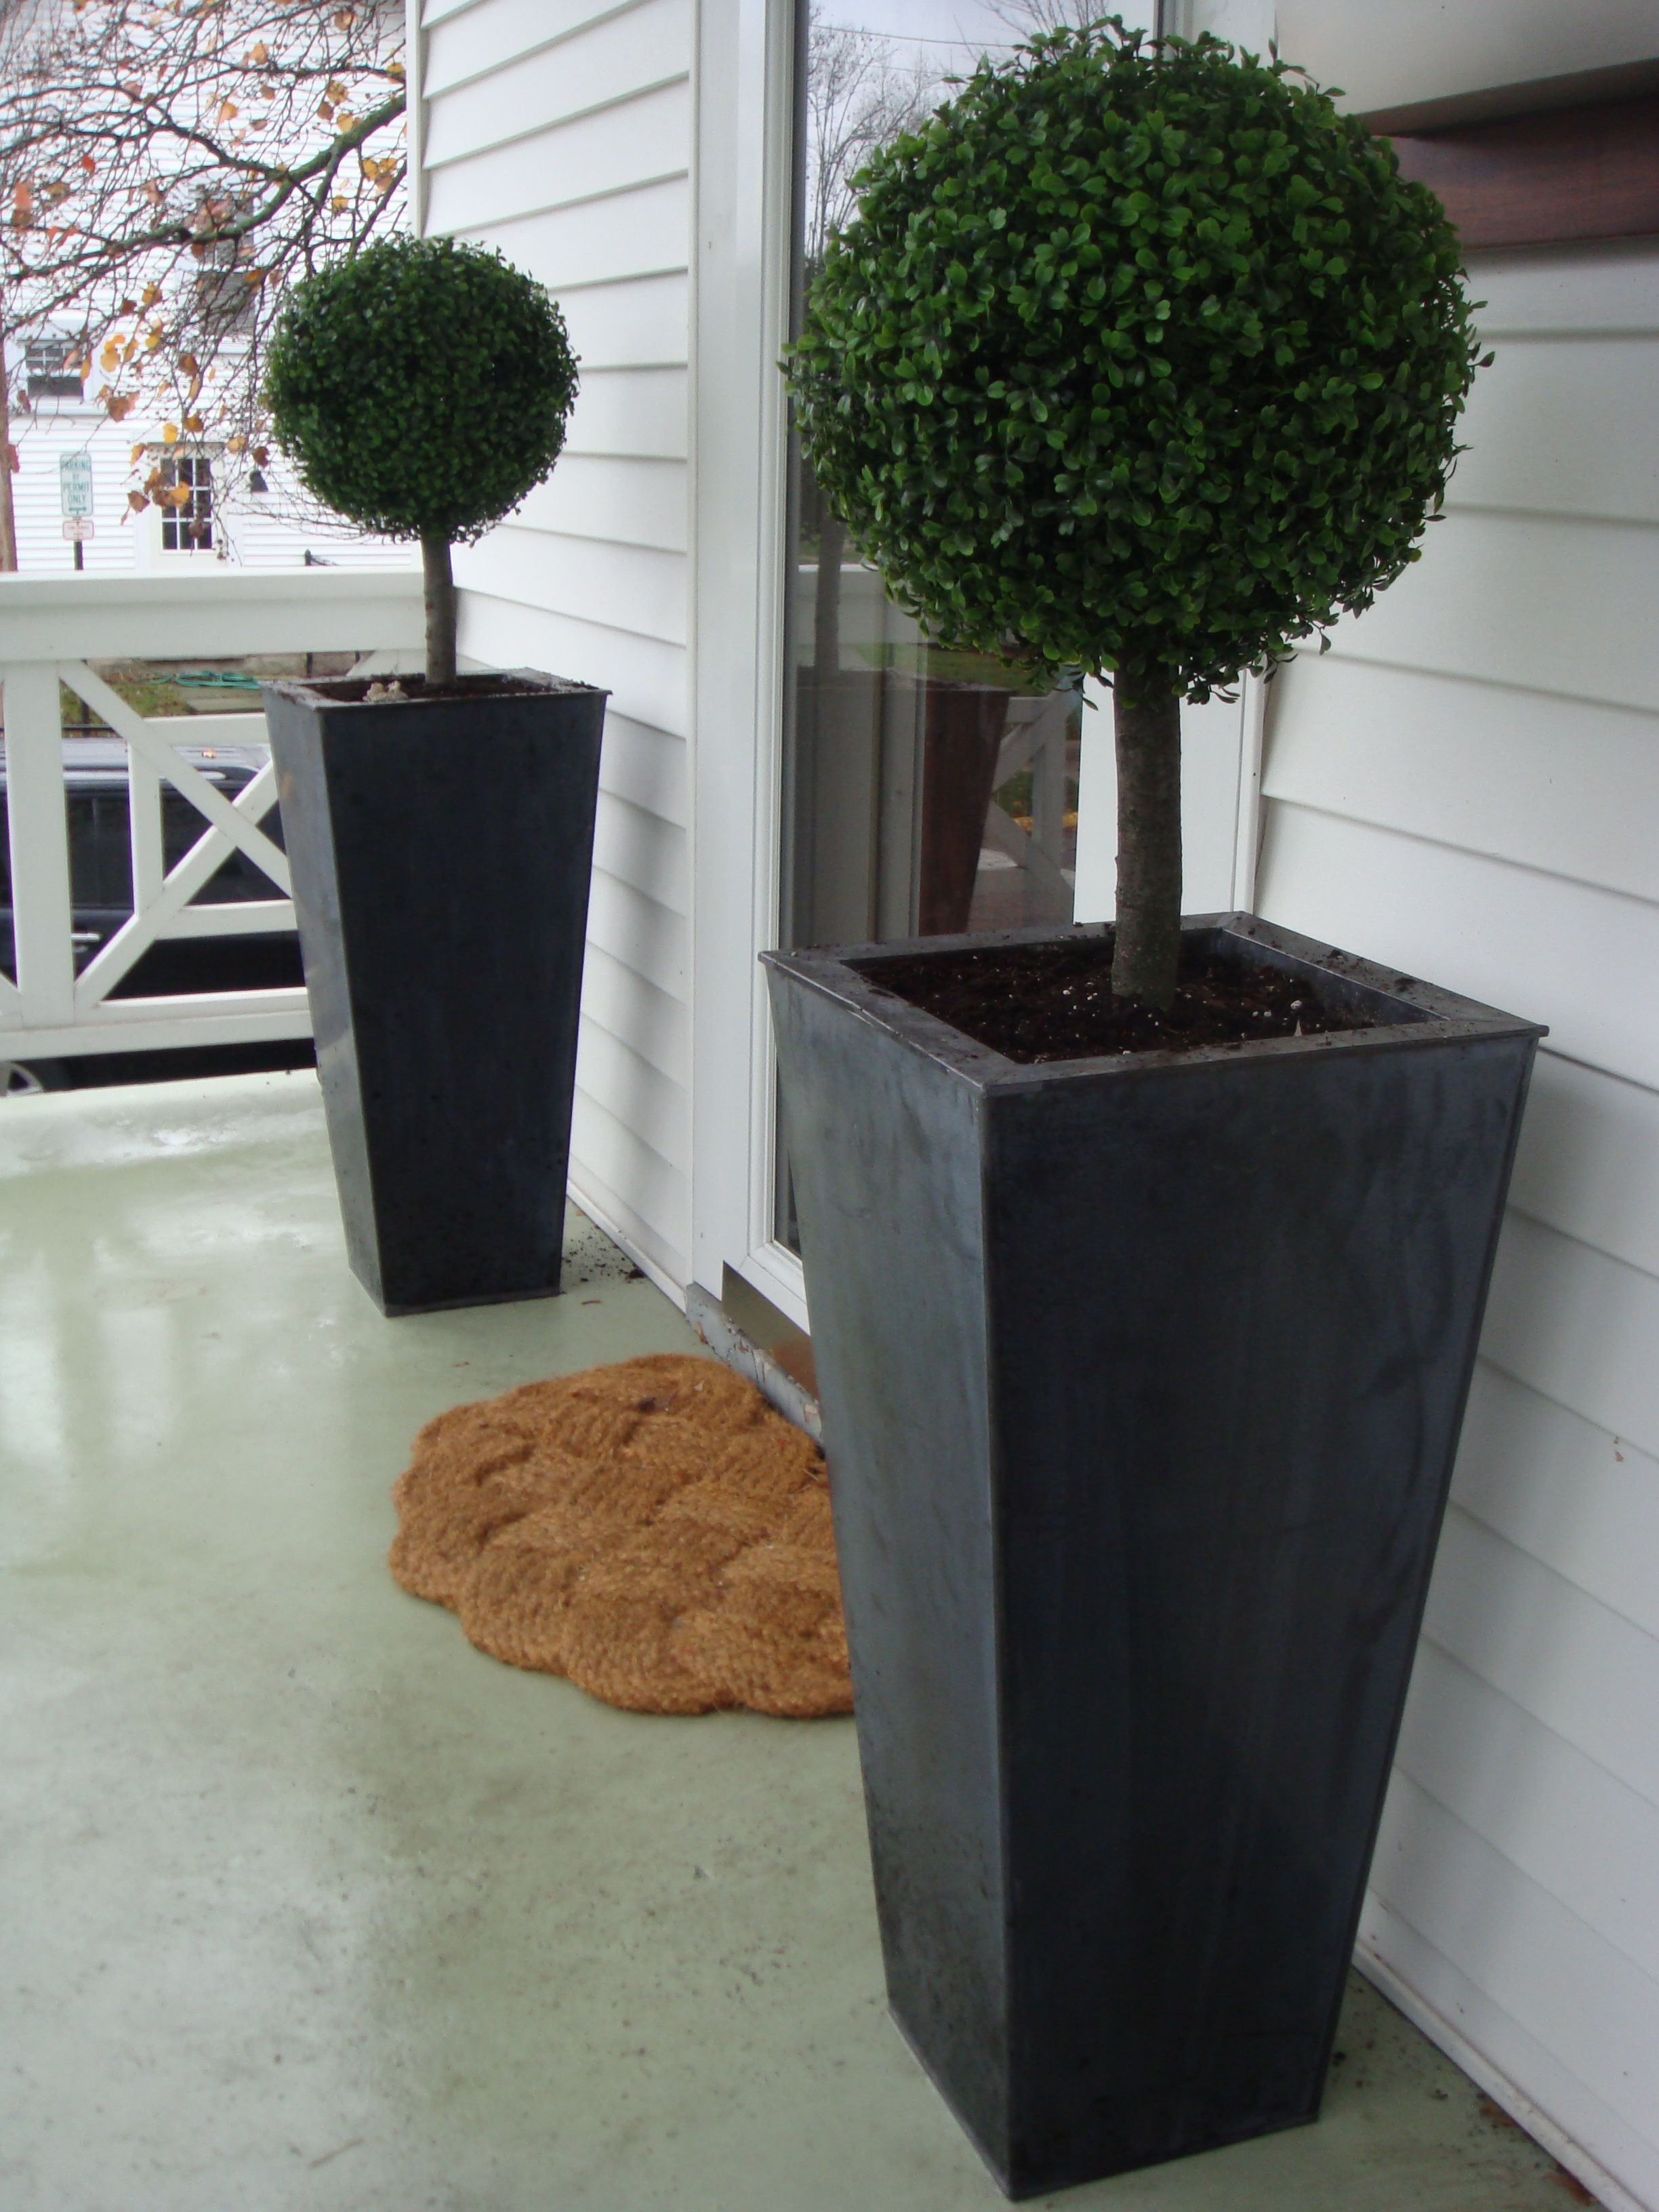 Genial Topiaries For Front Porch 2